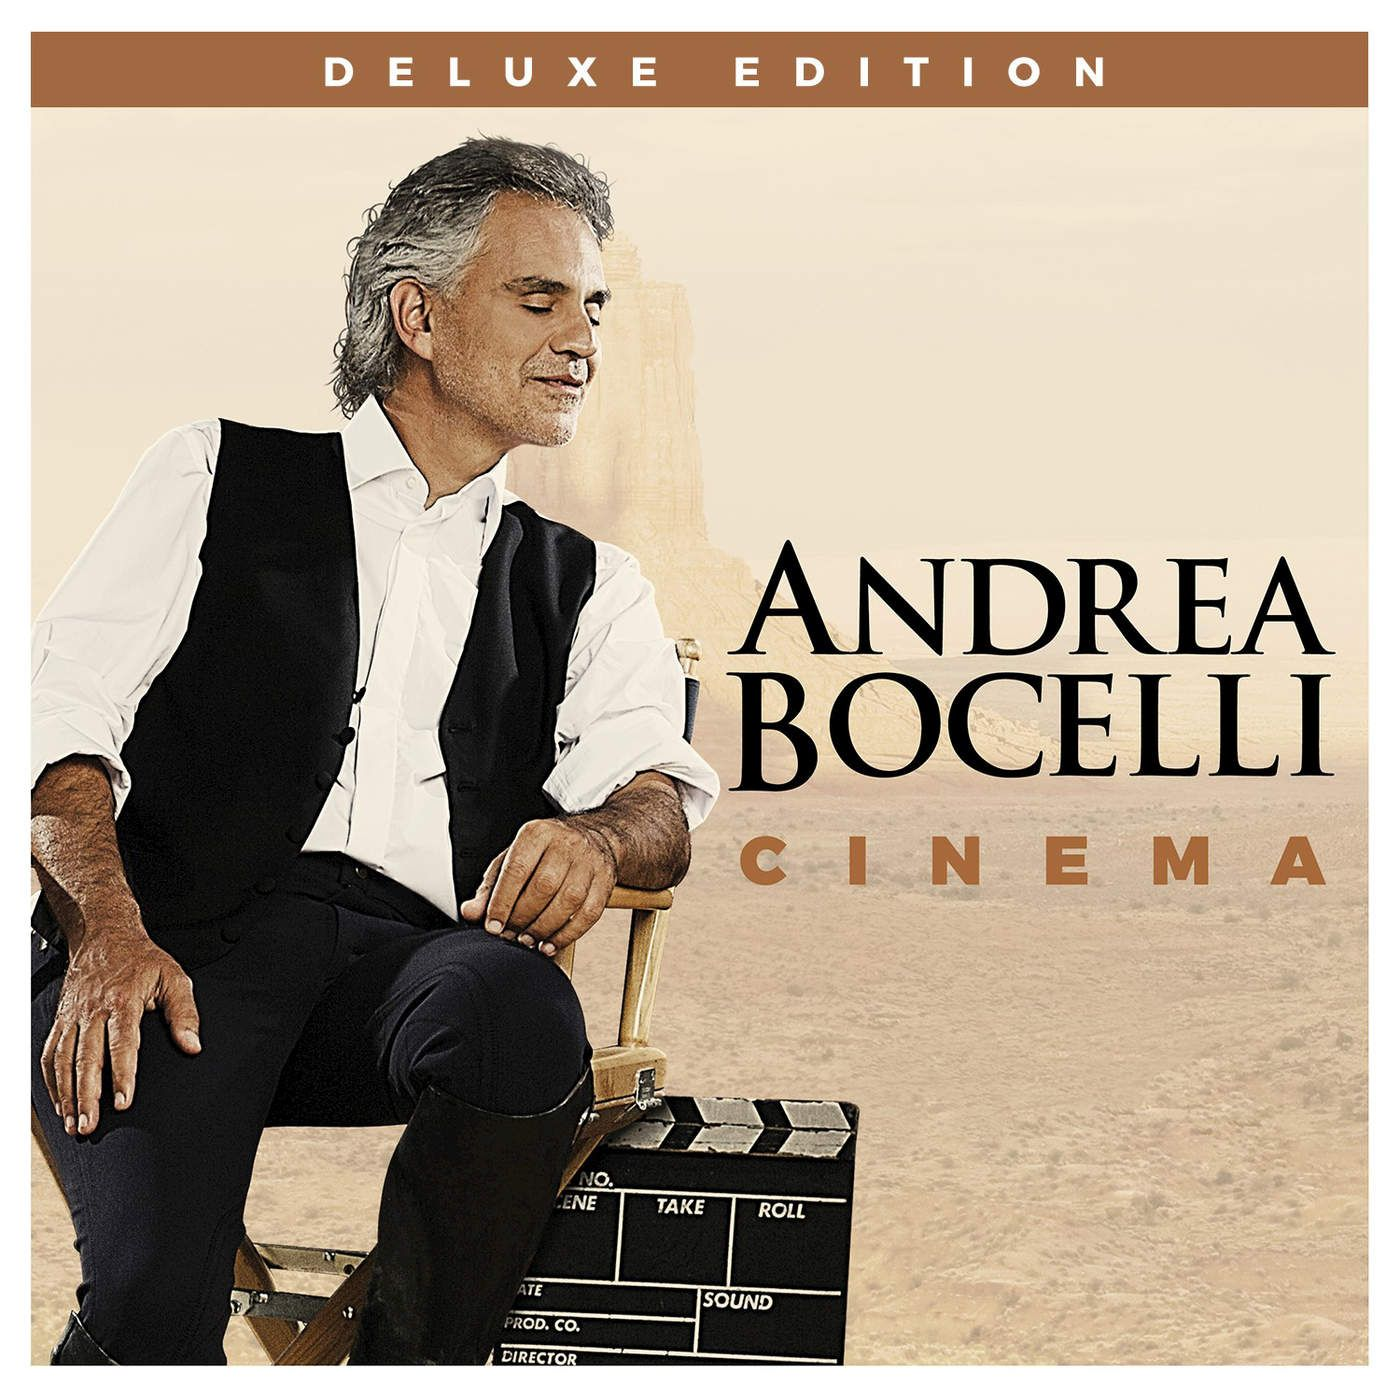 Andrea Bocelli - Cinema album cover